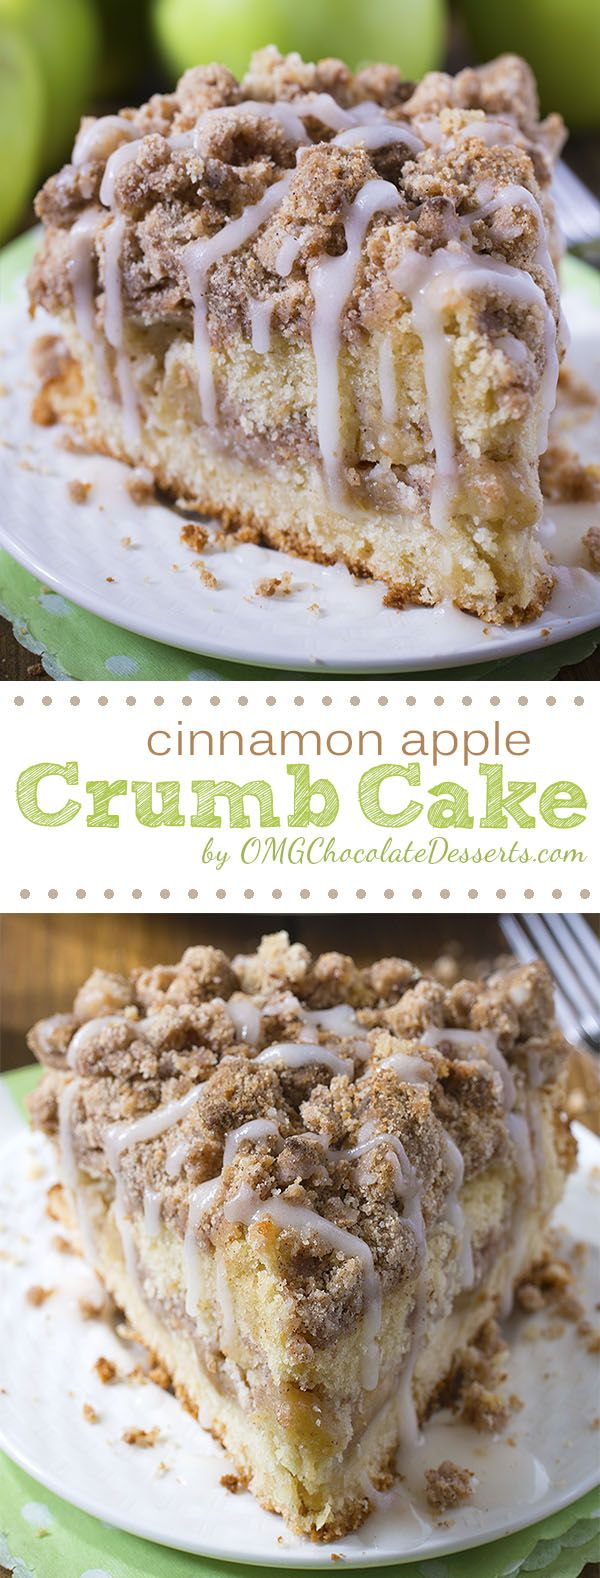 Are you ready for fall baking? Cinnamon Apple Crumb Cake is the perfect dessert for crisp weather coming up.